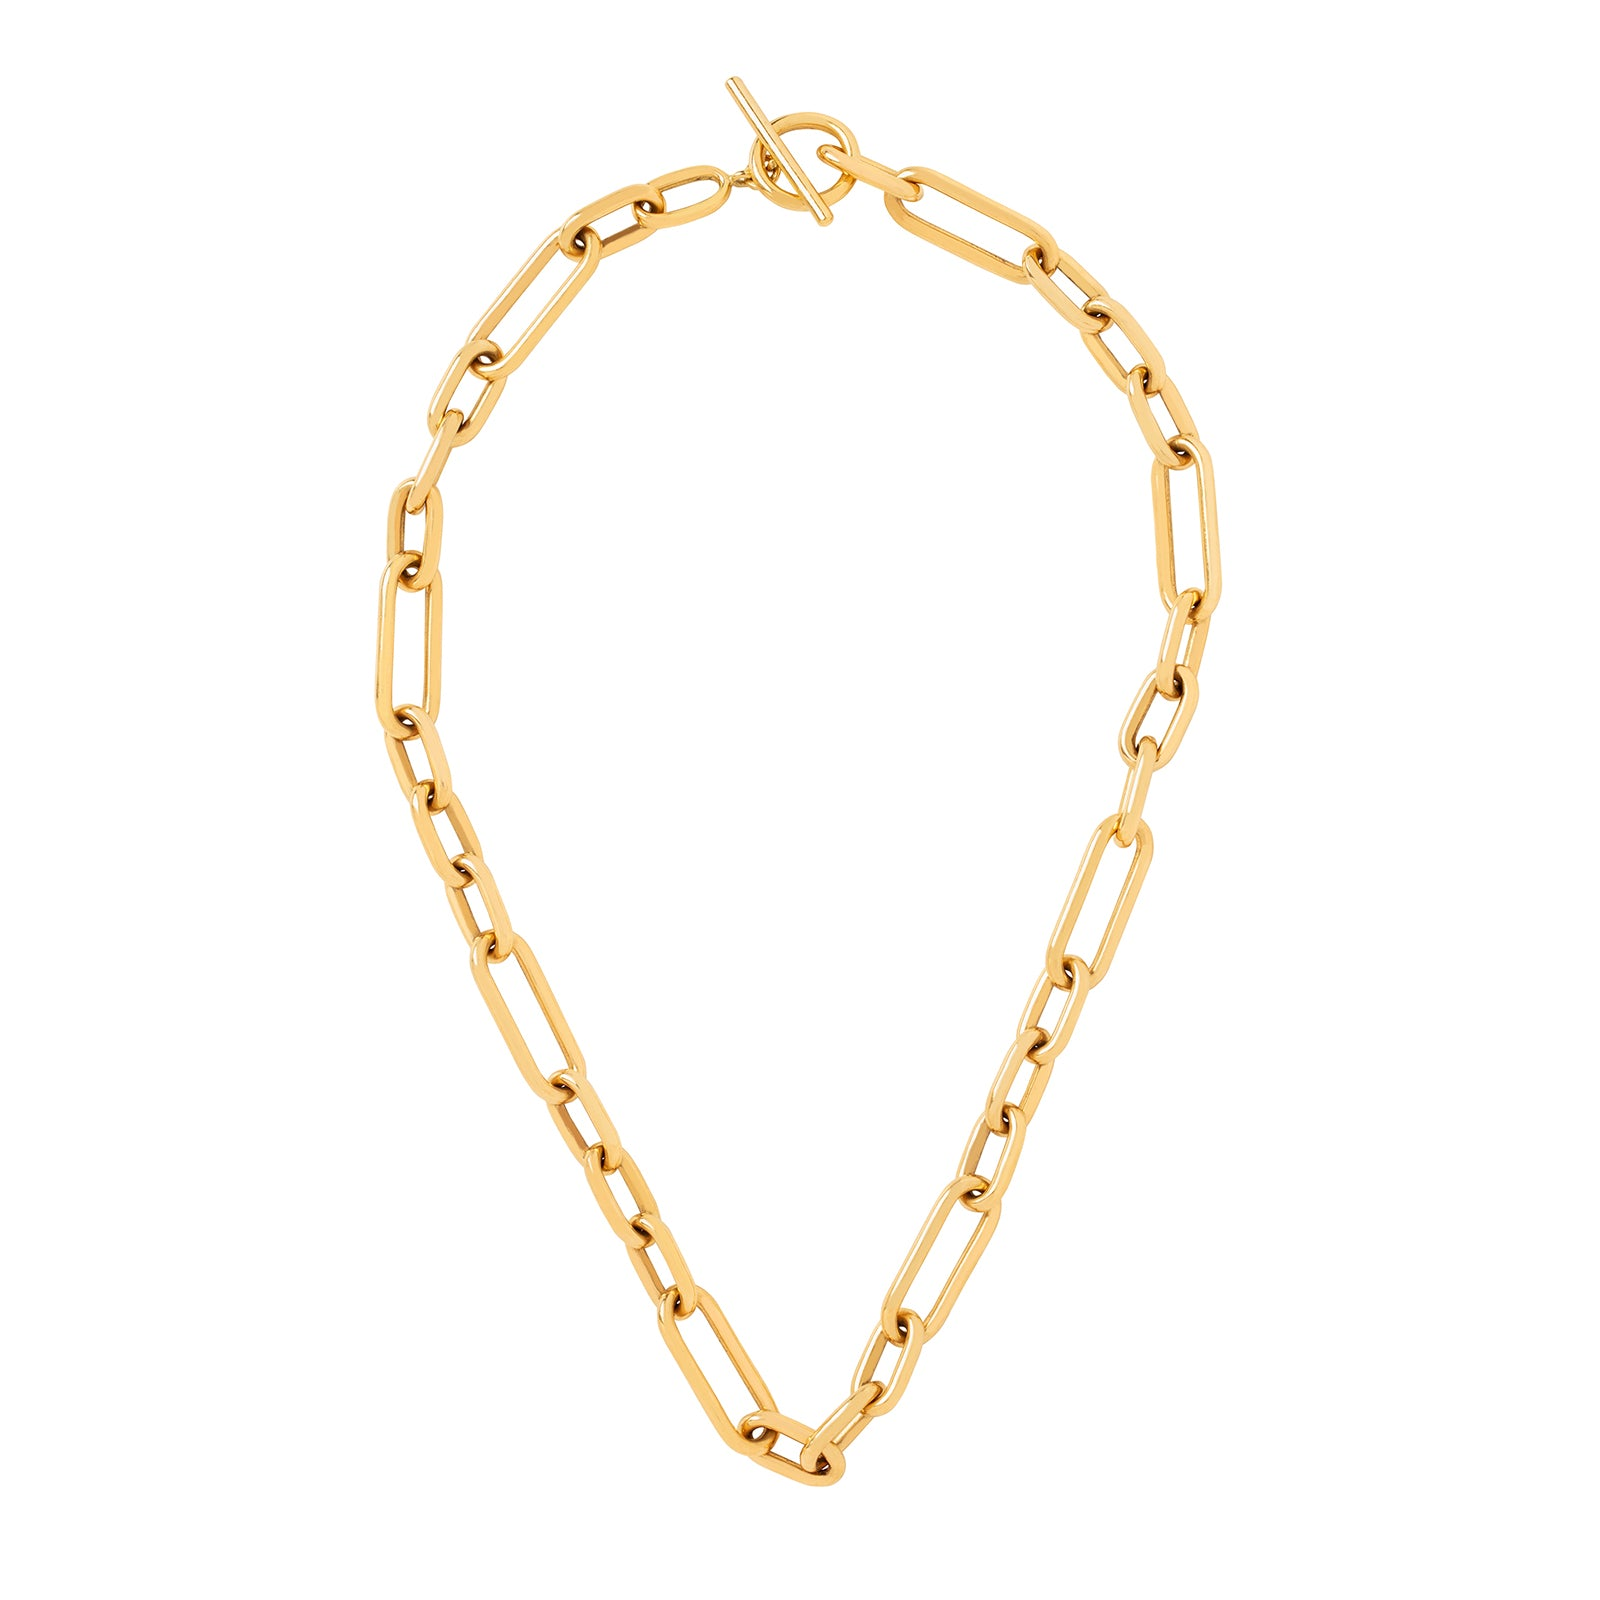 Jenna Blake Oversized Toggle Clasp Chain Necklace - Necklaces - Broken English Jewelry